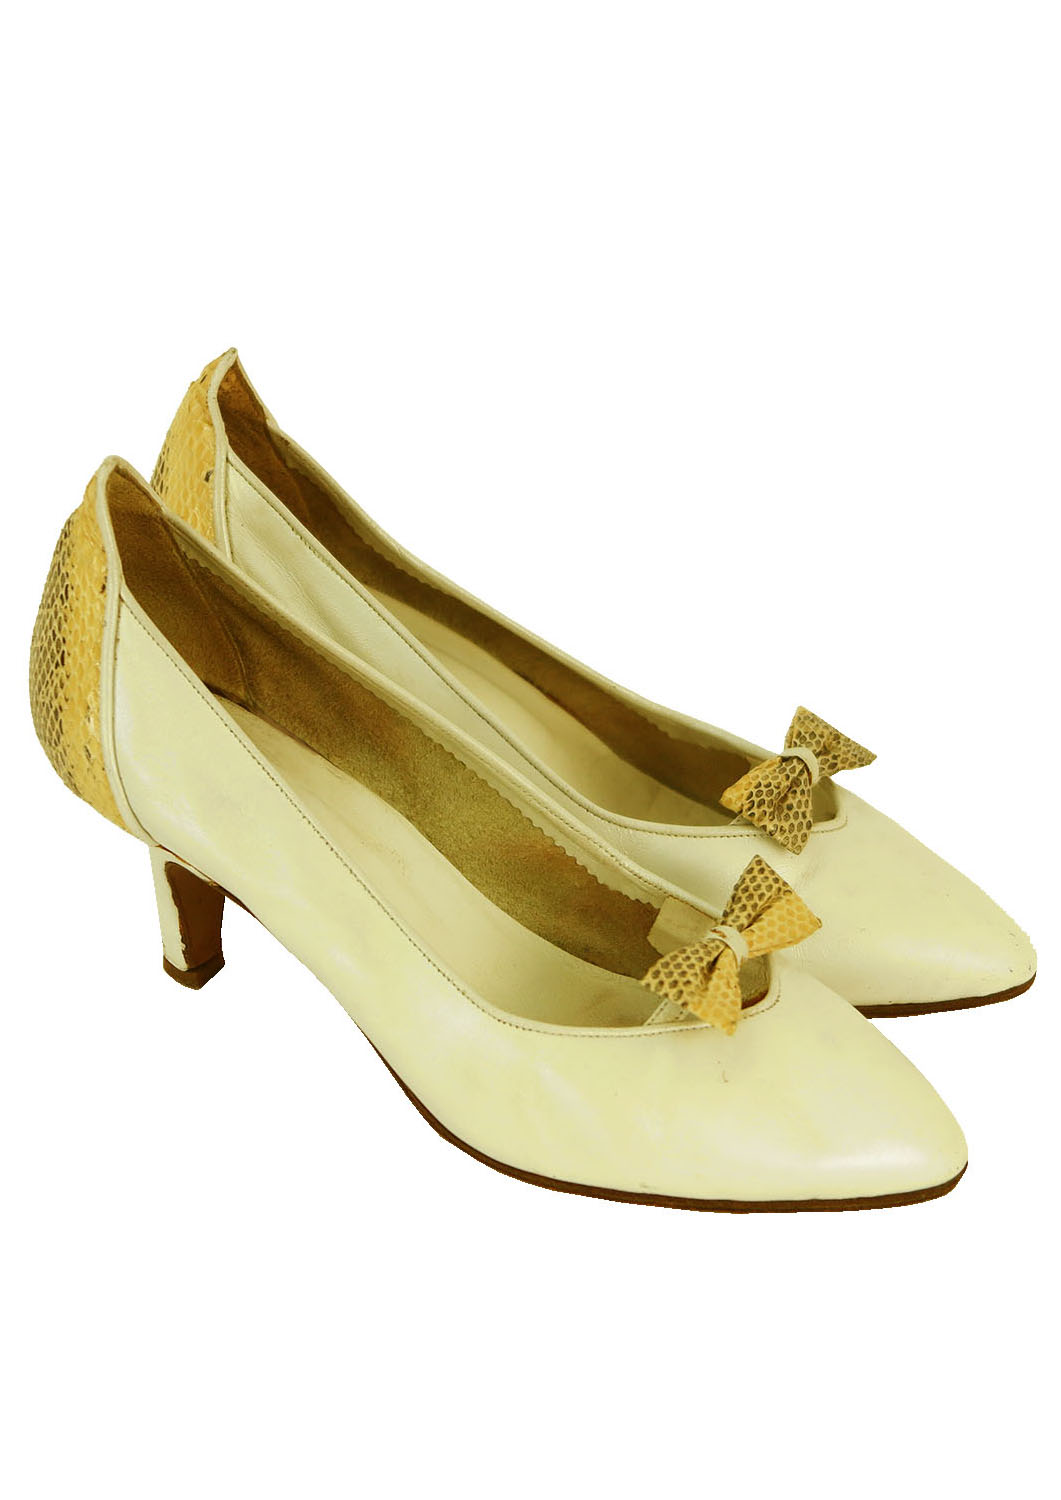 Pearlised White Court Shoes with